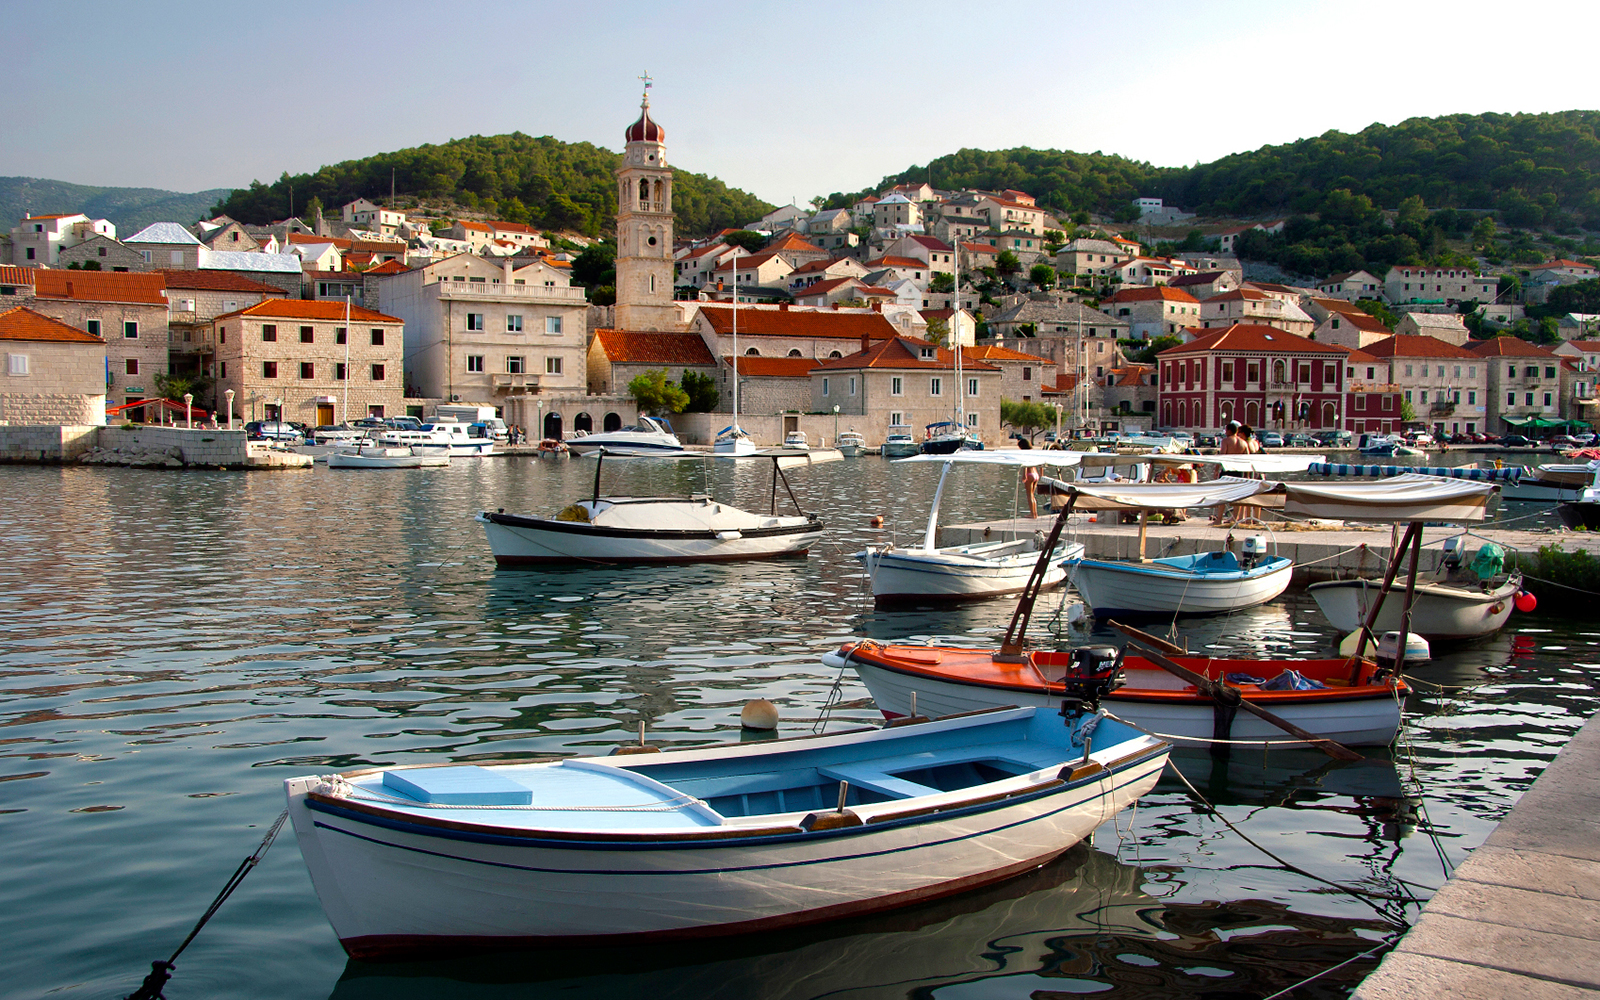 Europe's Most Beautiful Villages: Pucisca, Croatia